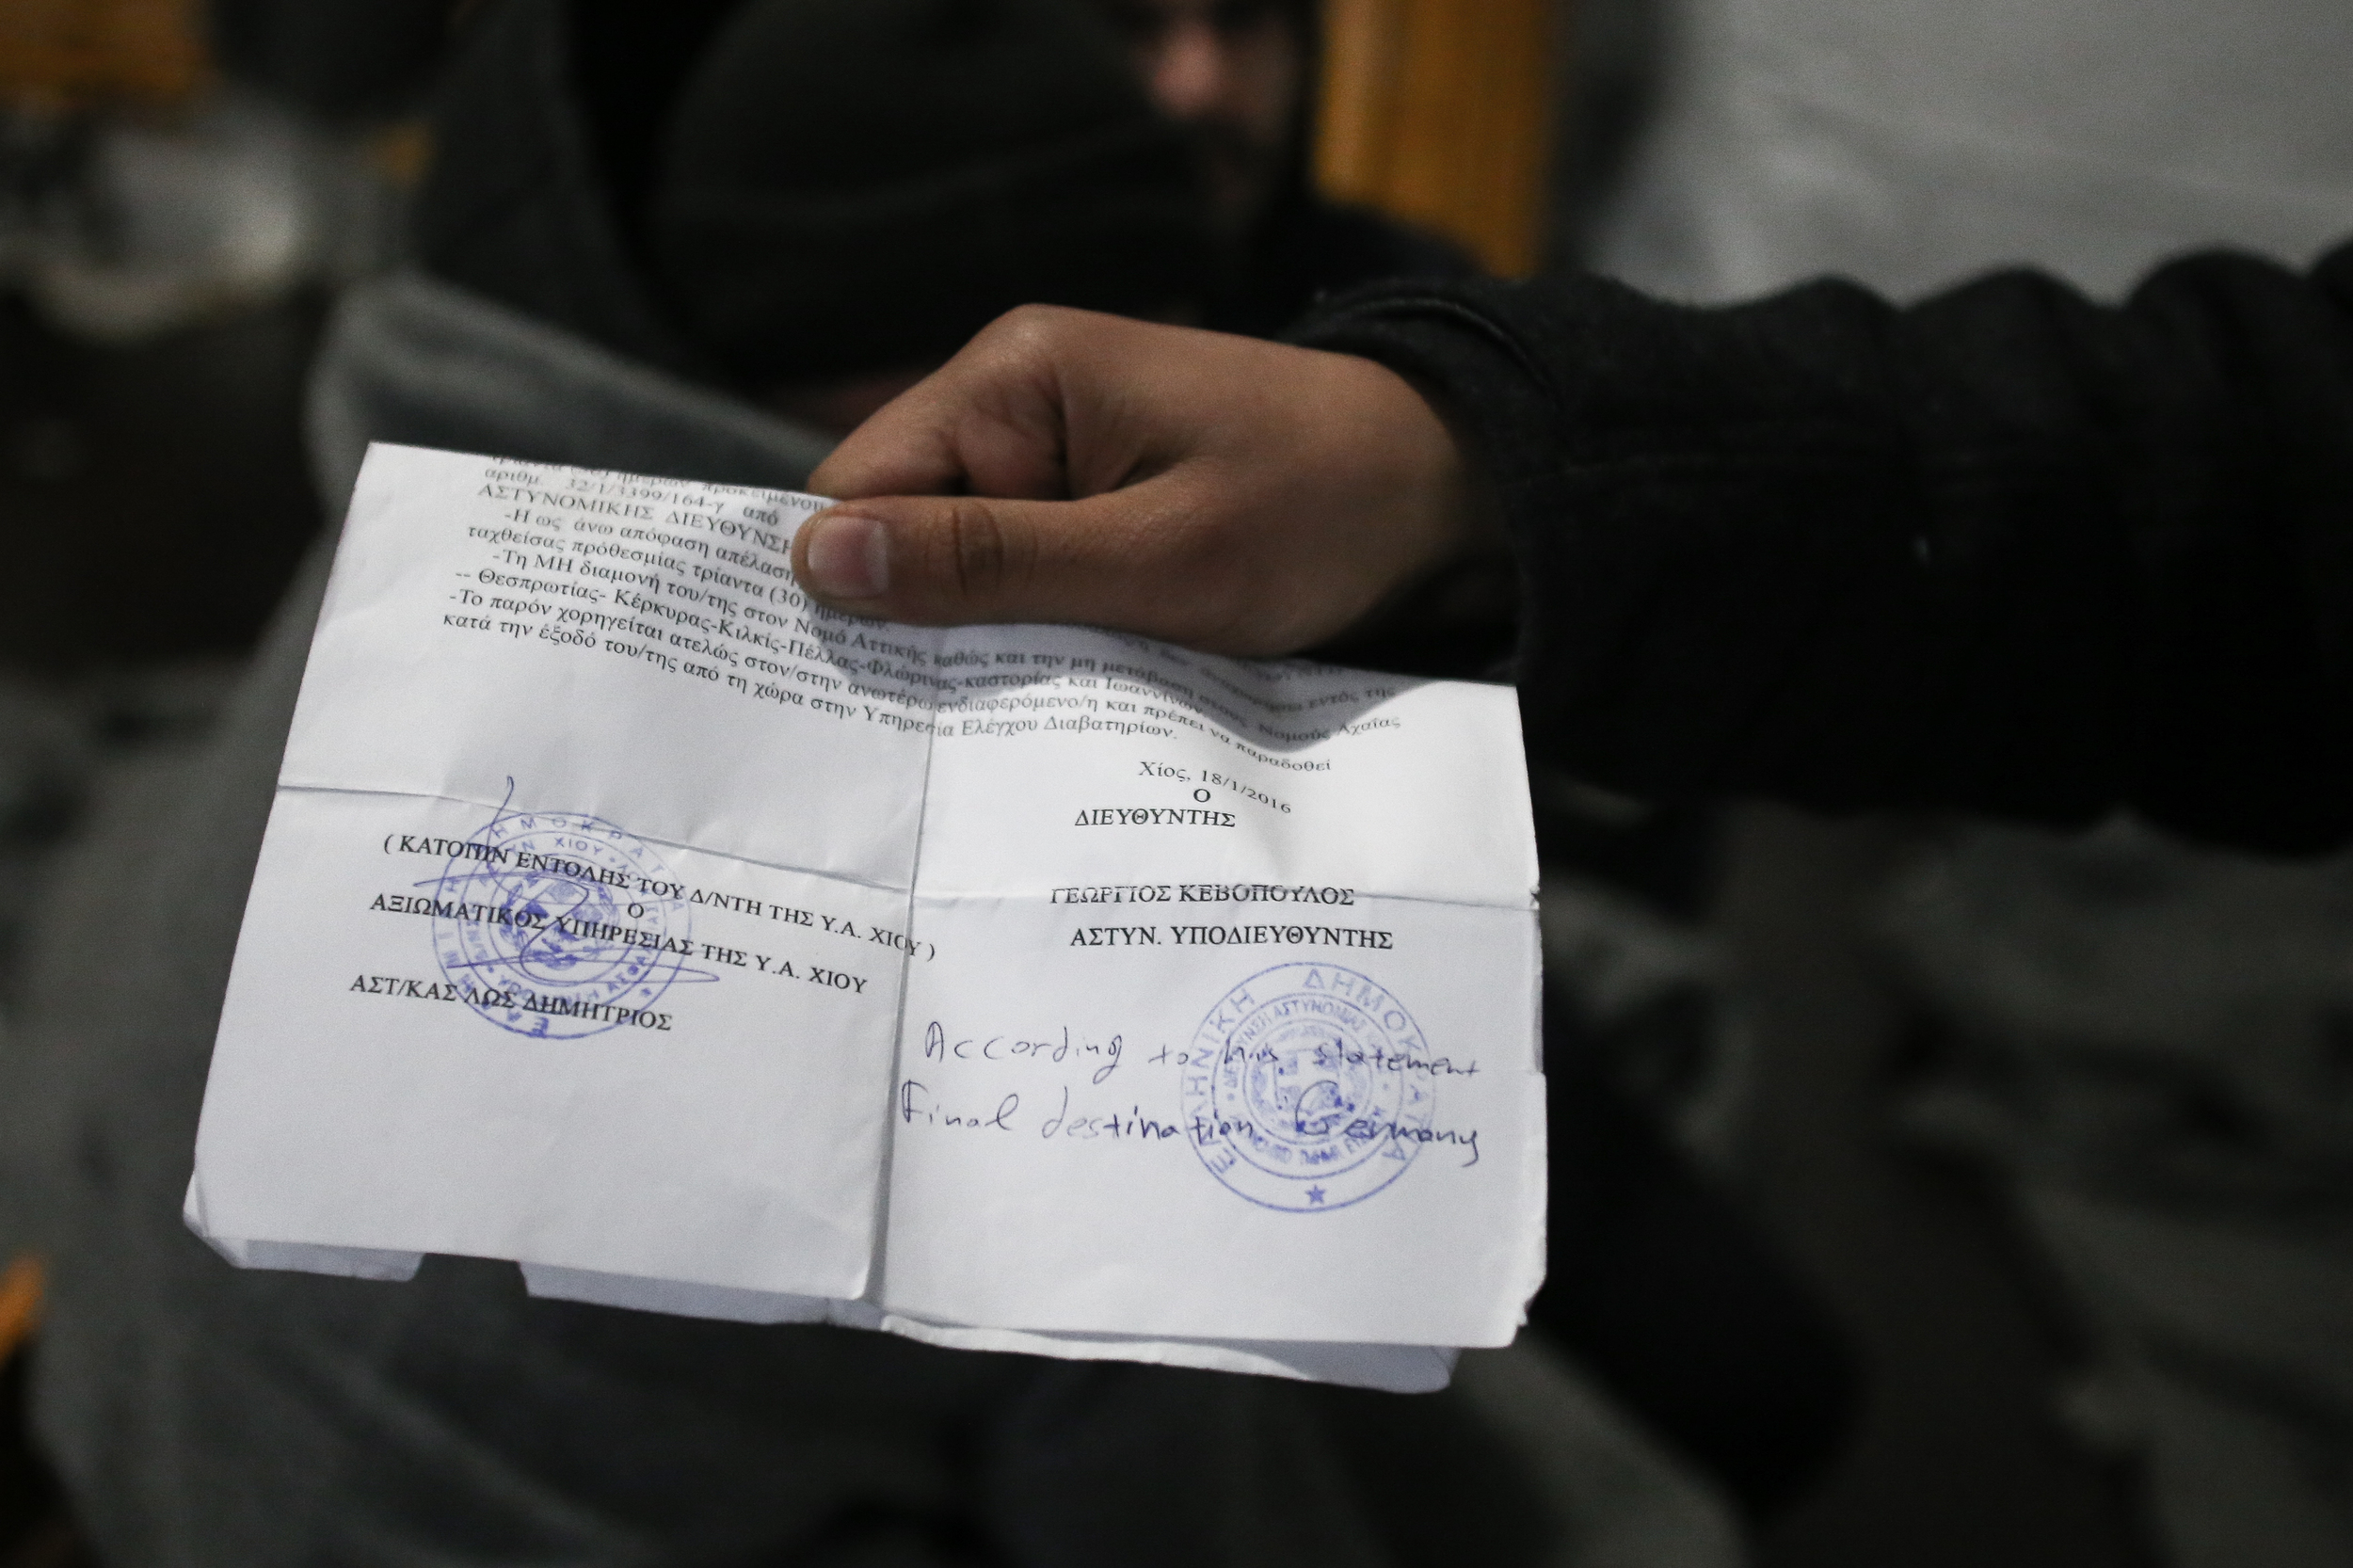 An Afghan refugee shows his Greek identification document on which Greek police have written: 'According to his statement, final destination Germany'. According to the latest border policy, only refugees who state Germany or Austria as their destination country are allowed to cross the border into Macedonia.